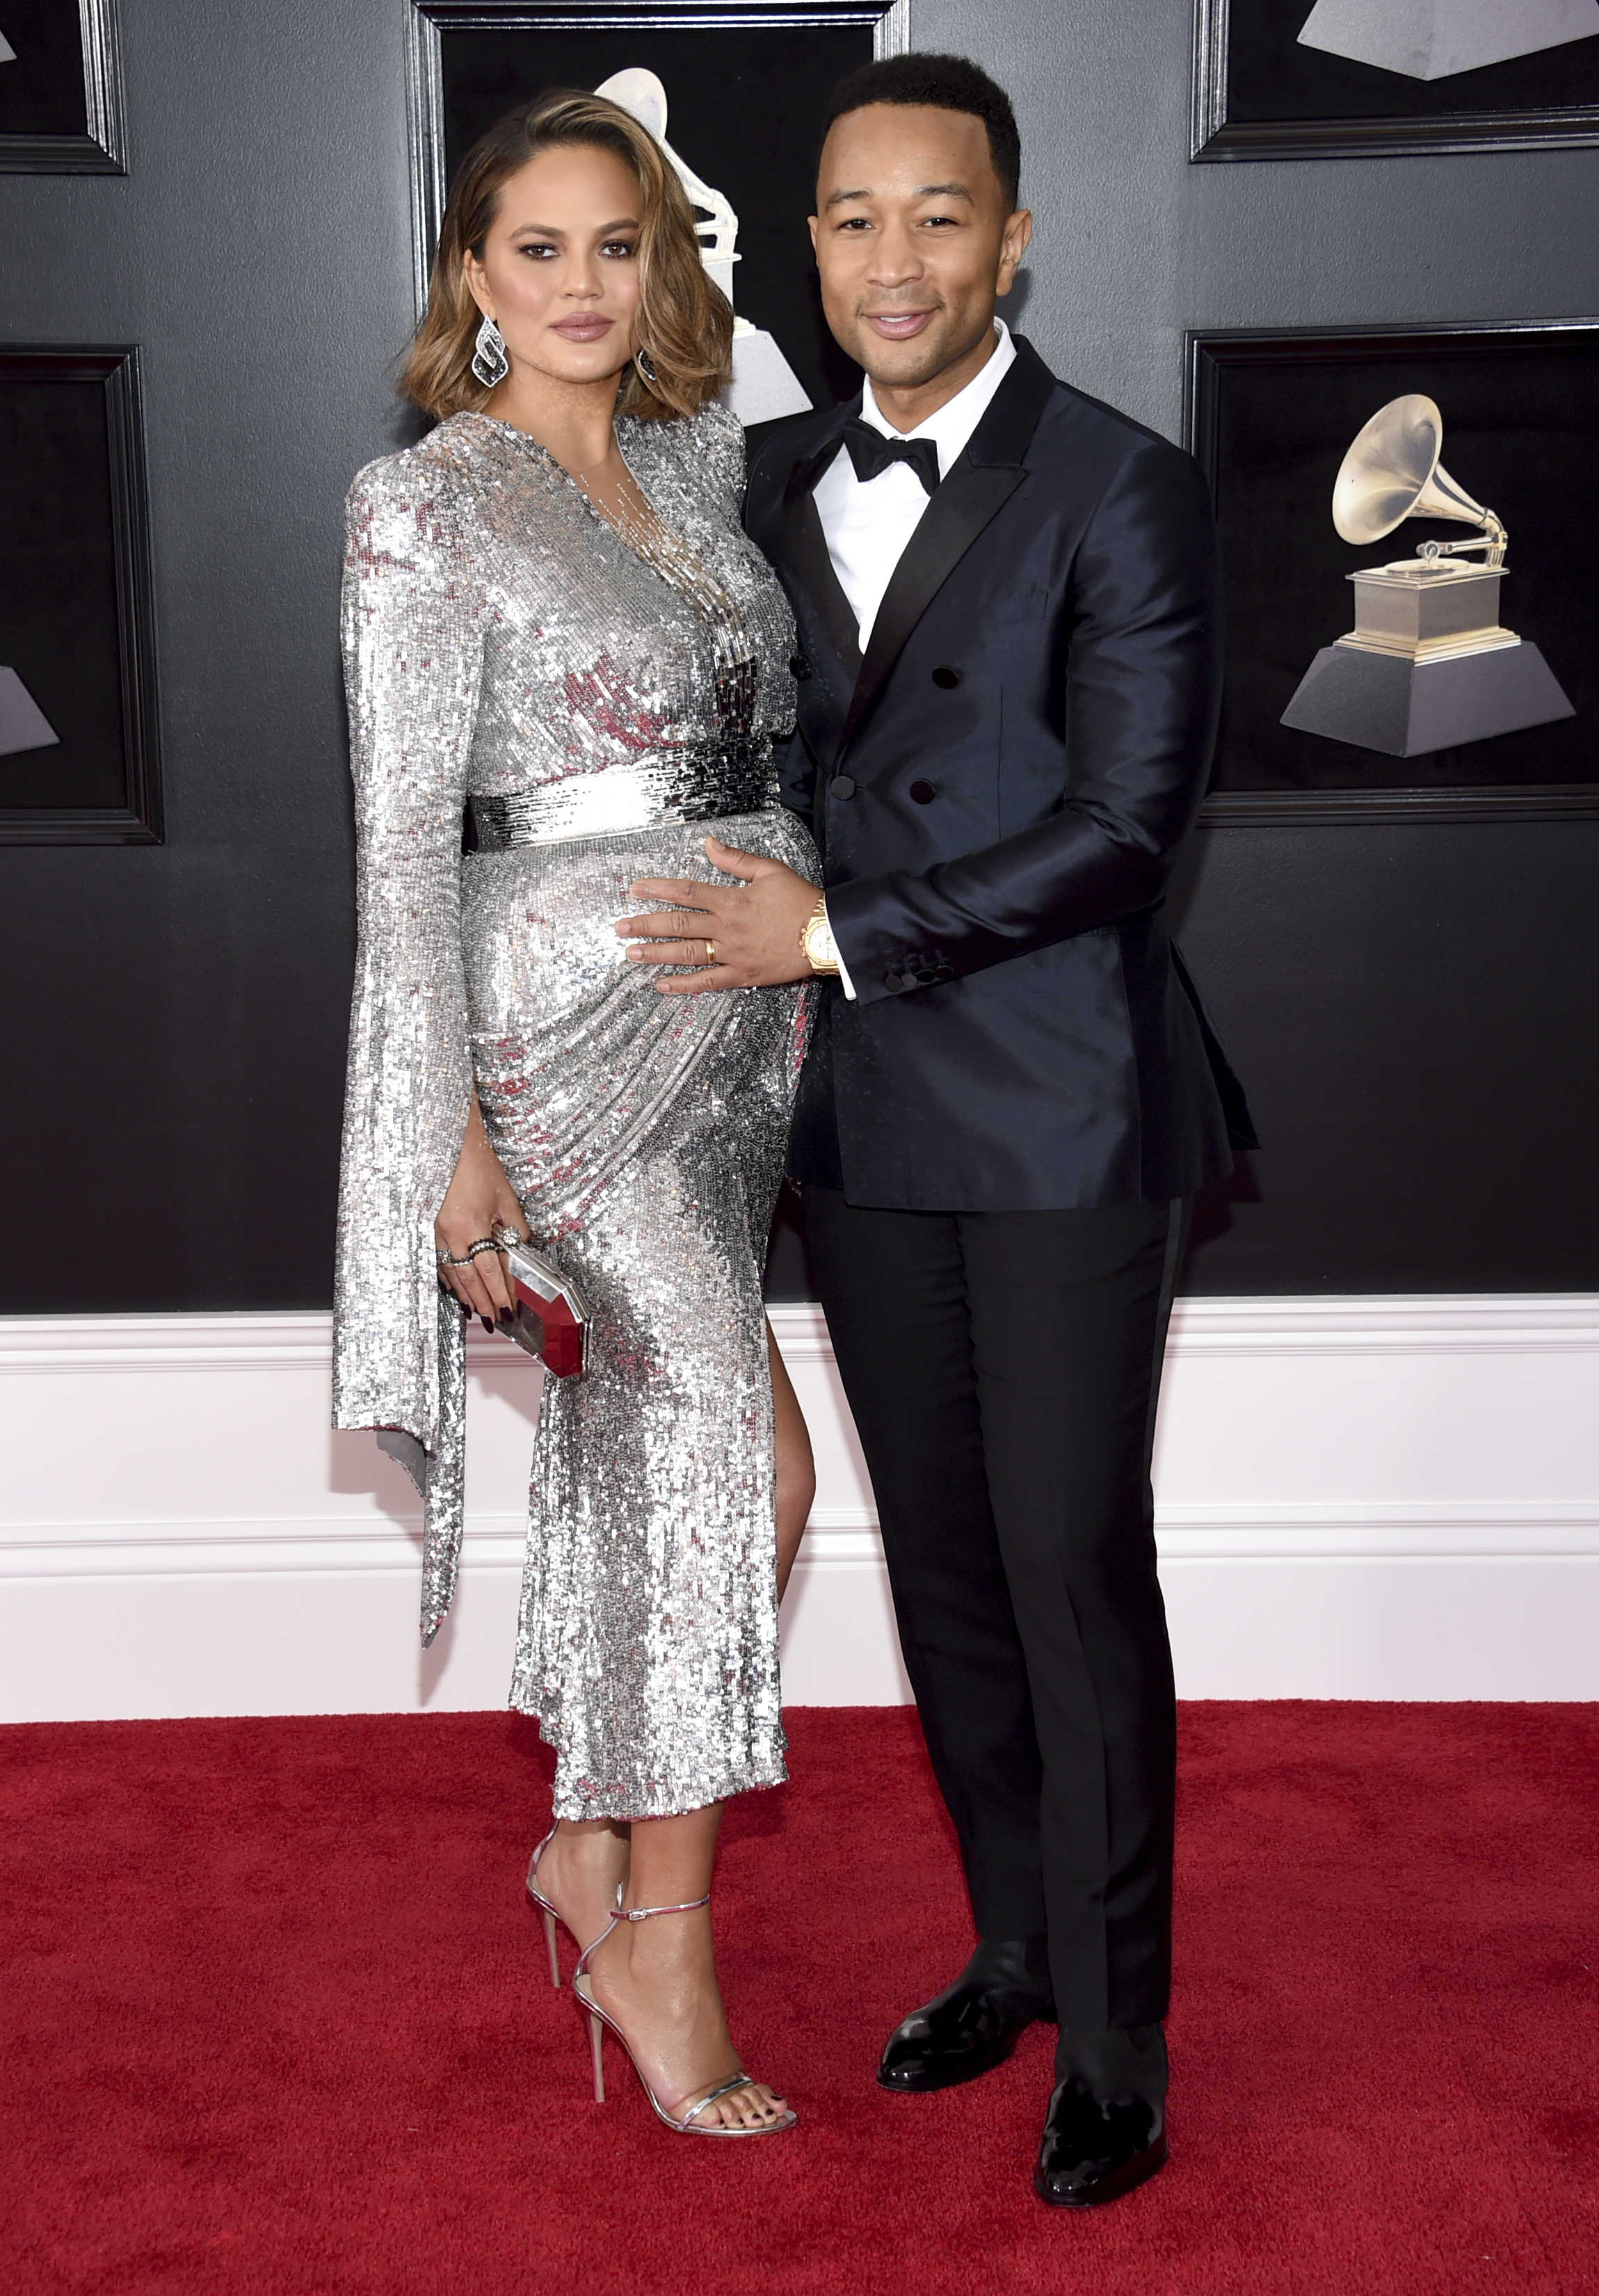 <div class='meta'><div class='origin-logo' data-origin='AP'></div><span class='caption-text' data-credit='Evan Agostini/Invision/AP'>Chrissy Teigen, left, and John Legend arrive at the 60th annual Grammy Awards at Madison Square Garden on Sunday, Jan. 28, 2018, in New York.</span></div>